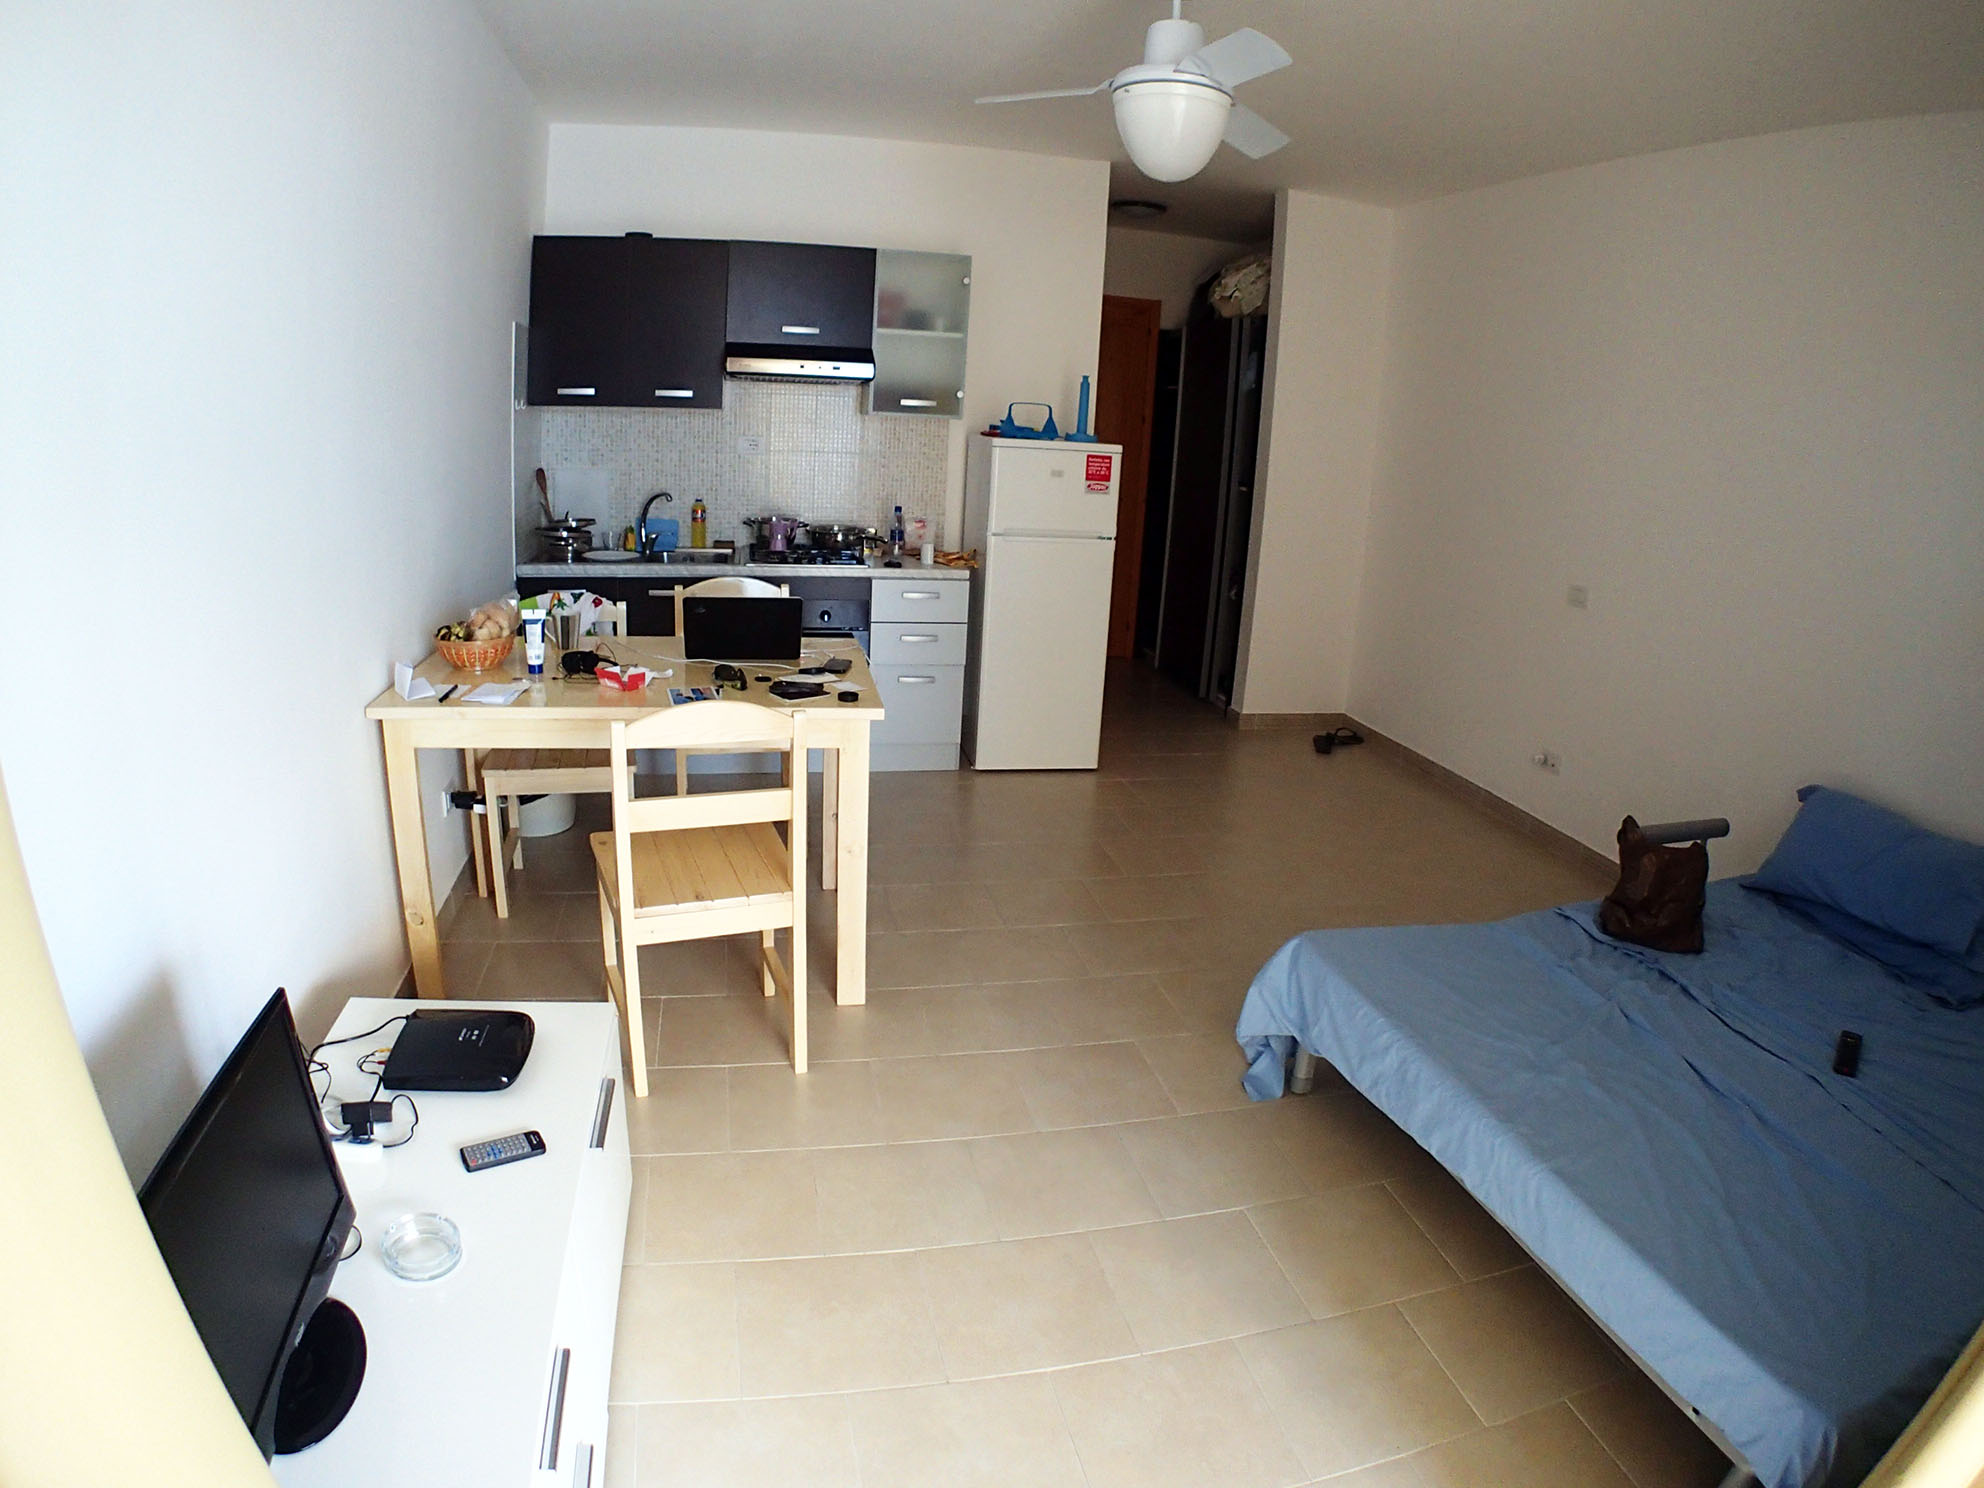 My new appartment